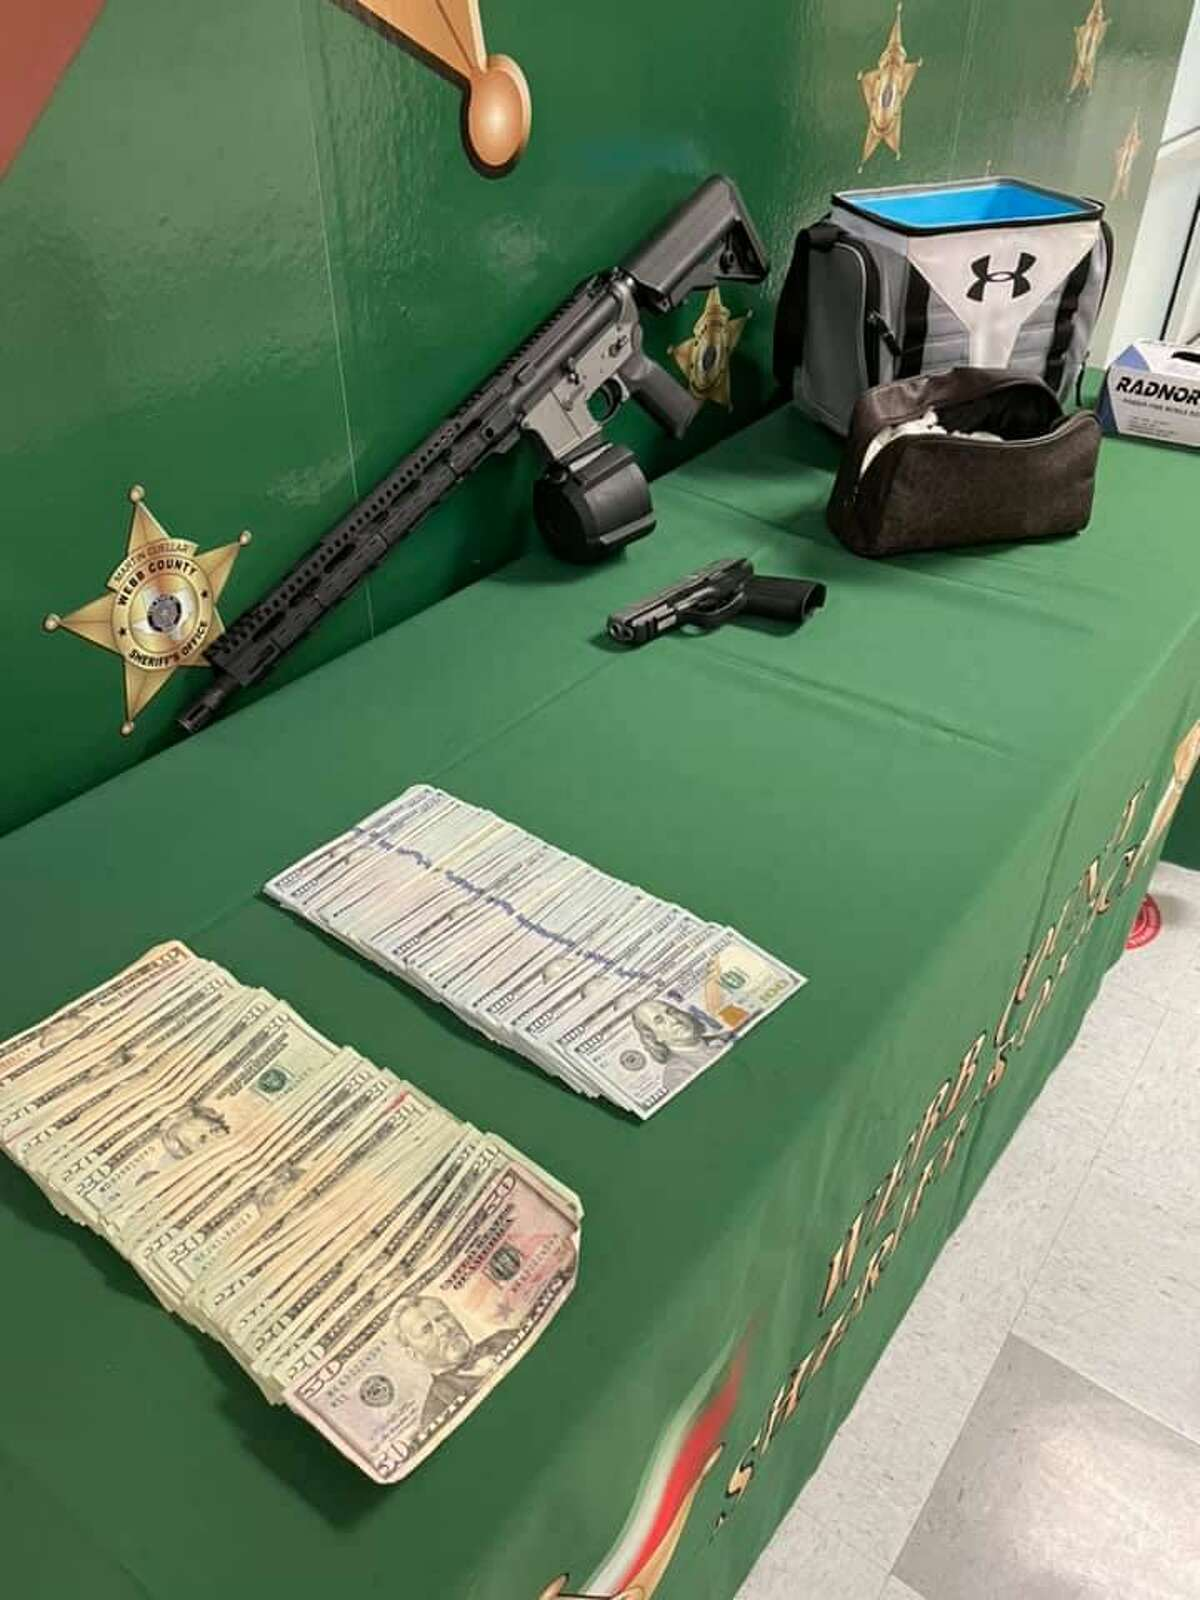 The Webb County Sheriff's Office along with Homeland Security Investigations raided a home in south Laredo that resulted in the seizure of cash, drugs and firearms. In addition, a man was arrested in connection with the case.